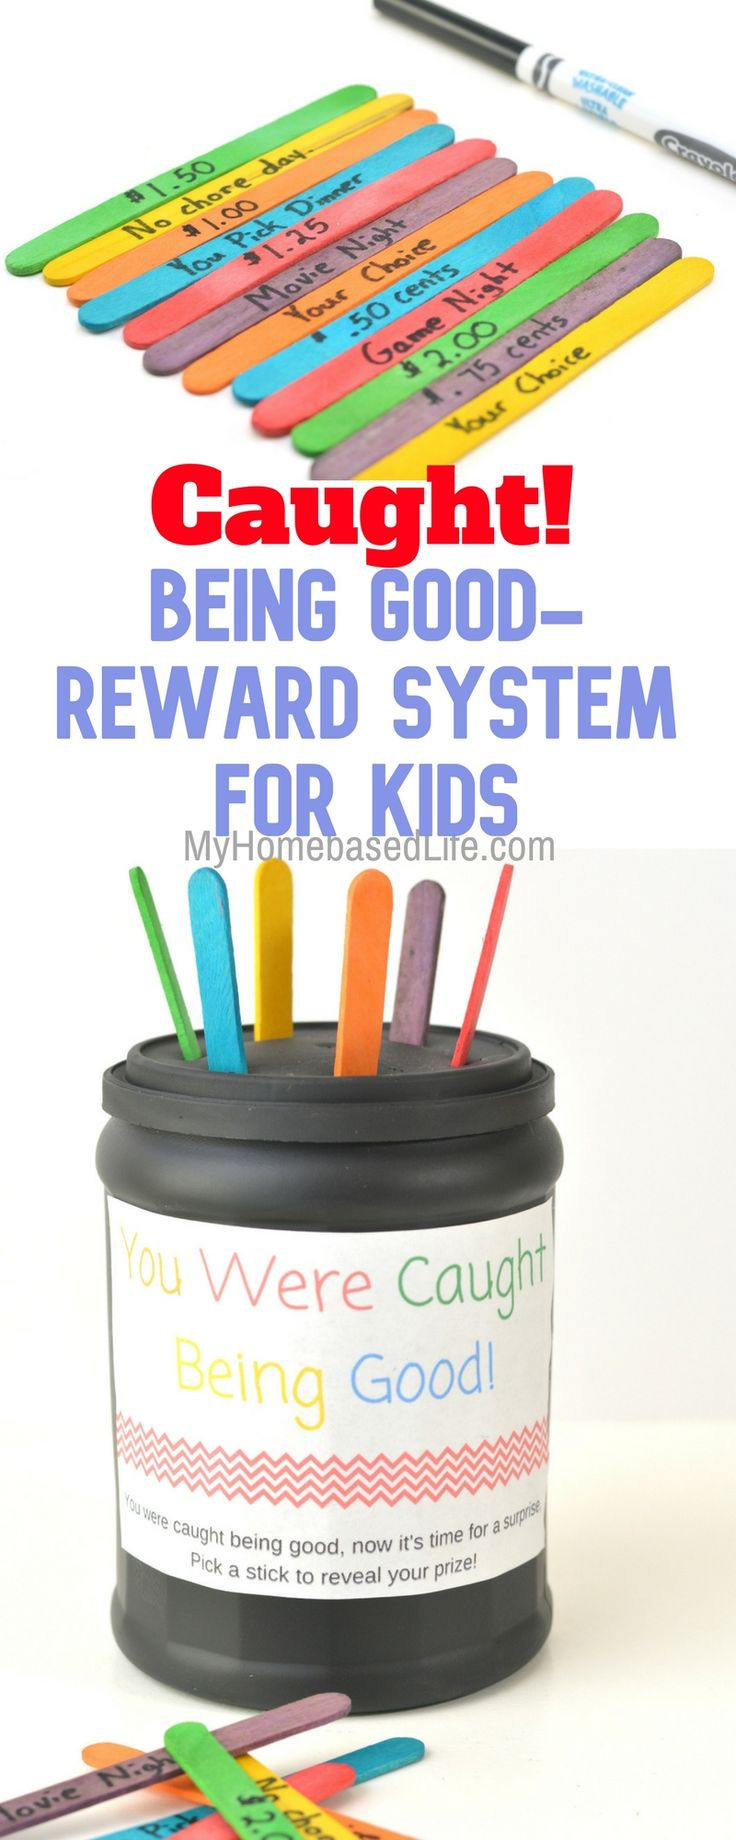 I did this with my kids but not with the Popsicles sticks and not with money. Just special ideas I knew they would really like.